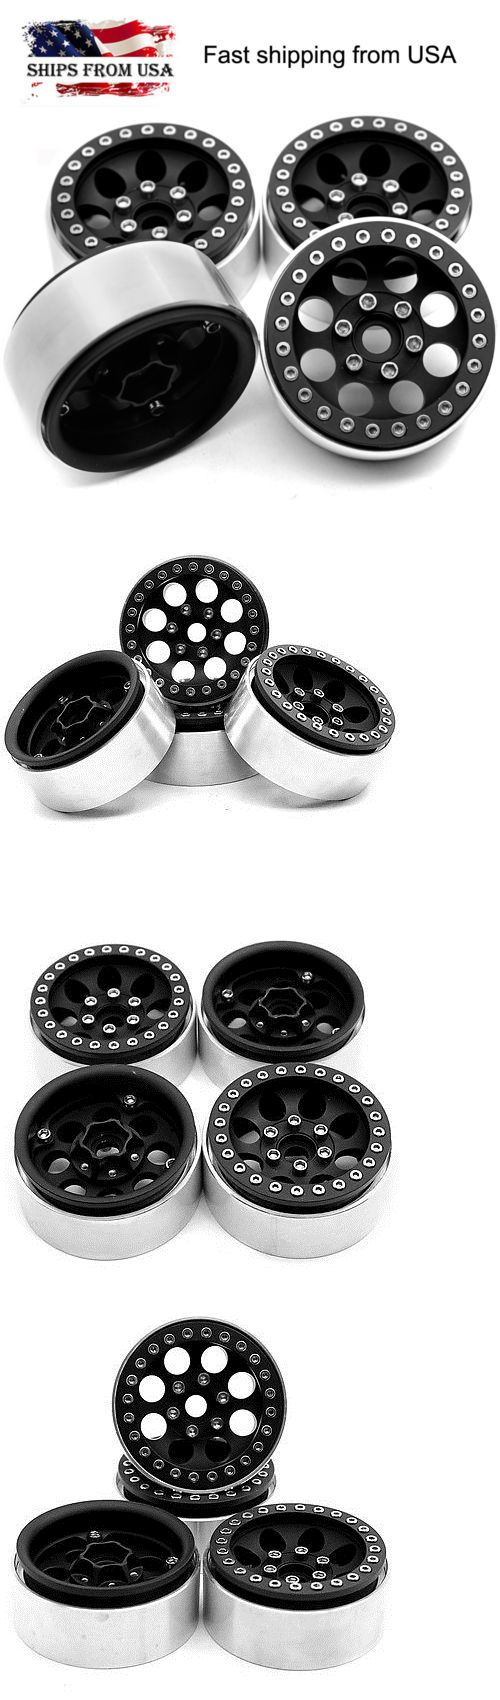 Wheels Tires Rims and Hubs 182201: 4Pcs 1.9 Alloy Beadlock Wheel Rims For Scx10 F350 Rc4wd D90 1 10 Rc Crawler Us -> BUY IT NOW ONLY: $52.25 on eBay!